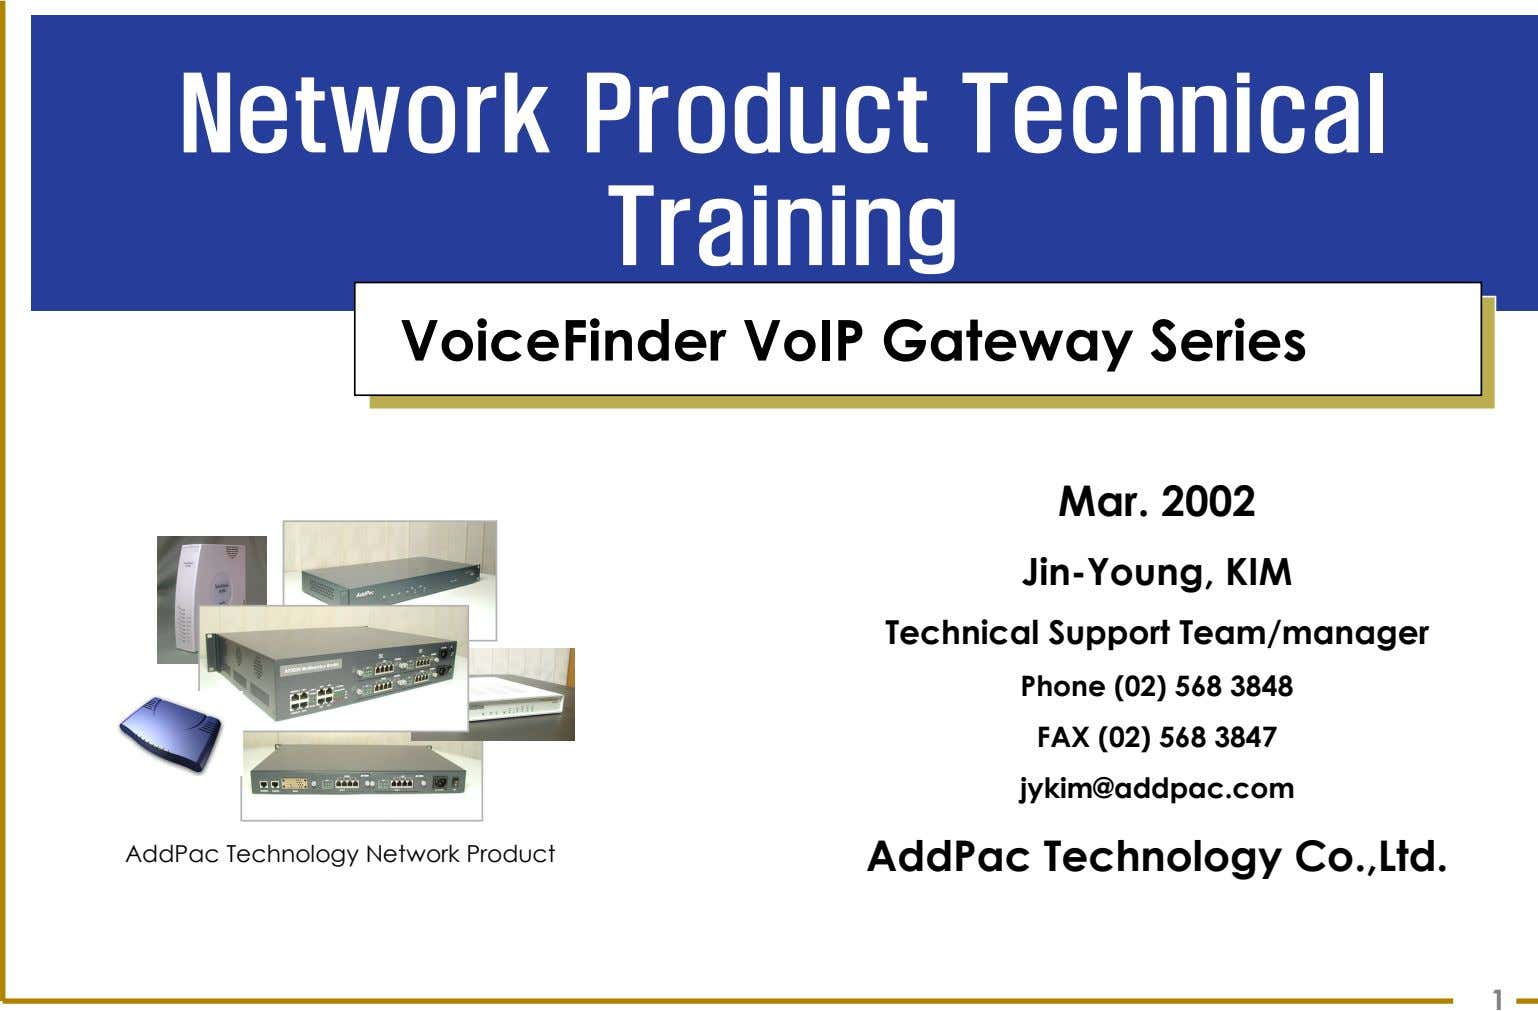 Network Product Technical Training VoiceFinder VoIP Gateway Series Mar. 2002 Jin-Young, KIM Technical Support